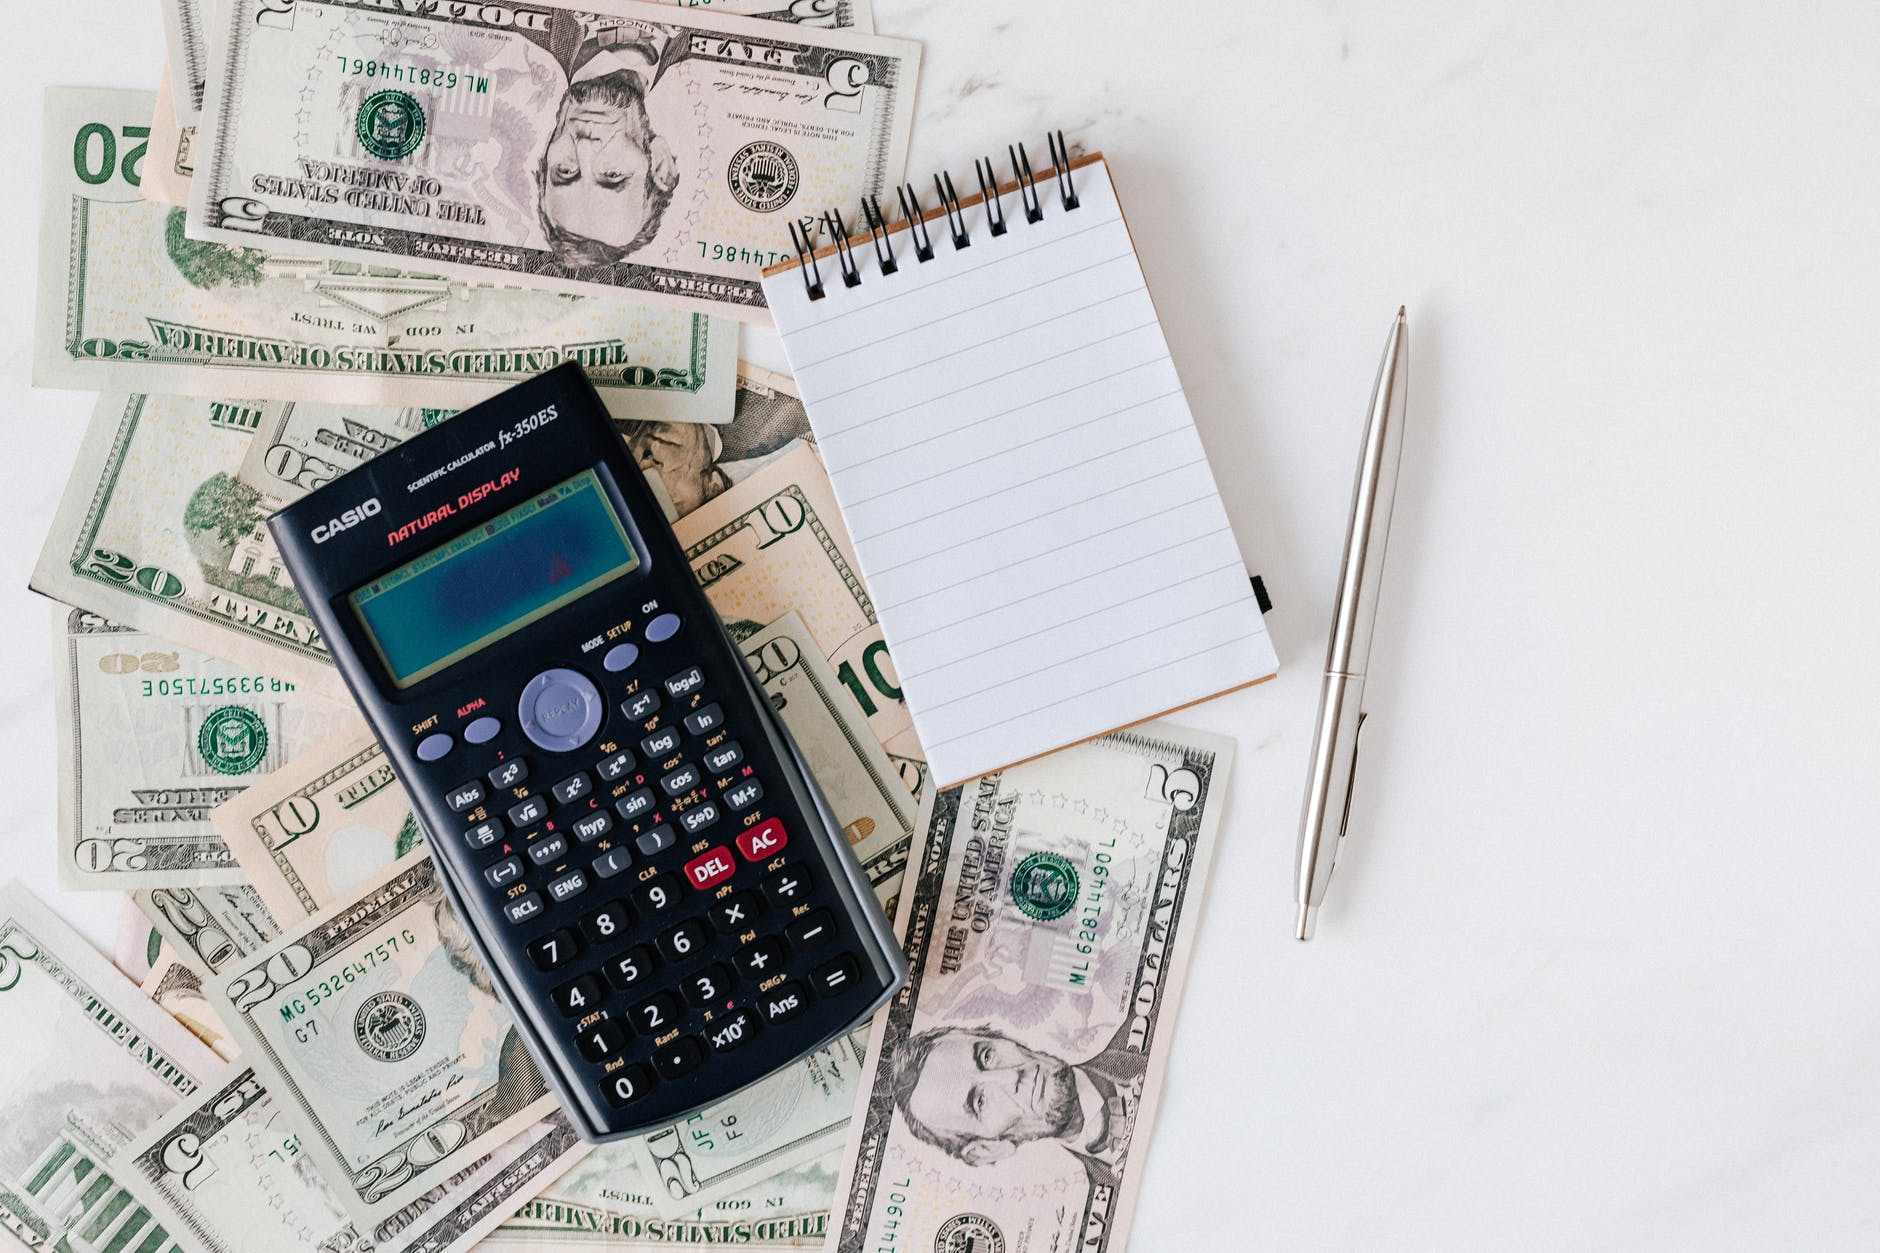 Minimum Wages Claims Based on Misclassification